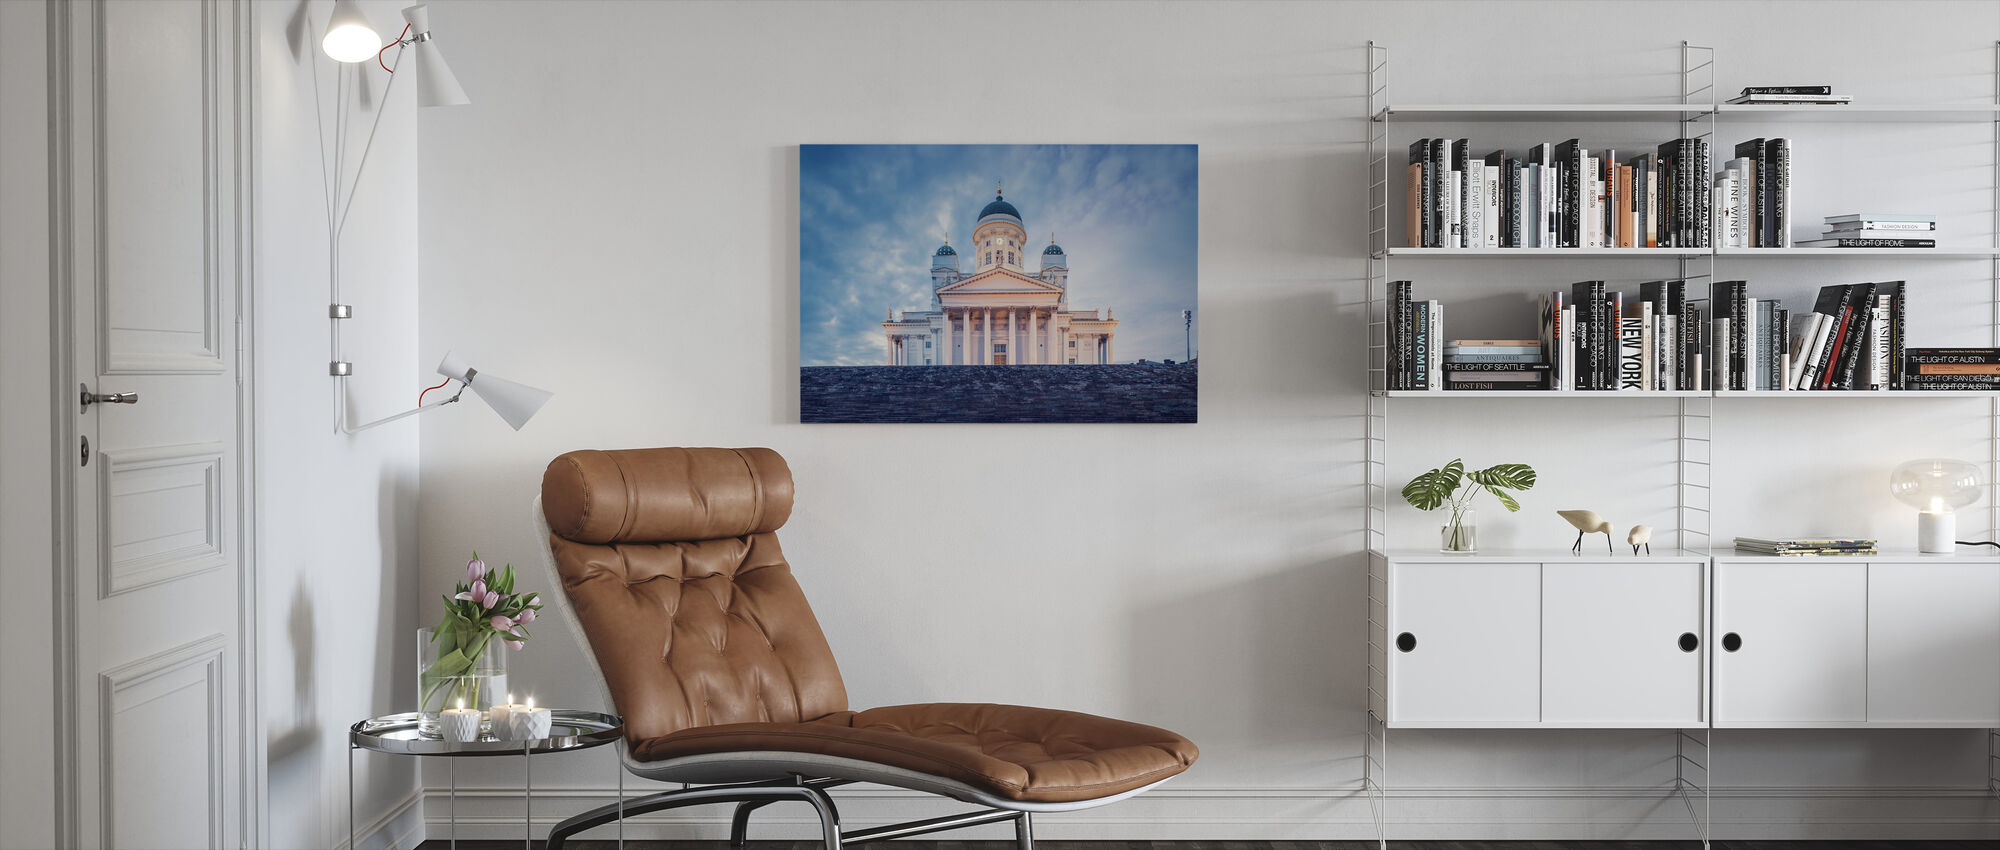 Helsinki Lutheran Cathedral in Evening Light - Canvas print - Living Room